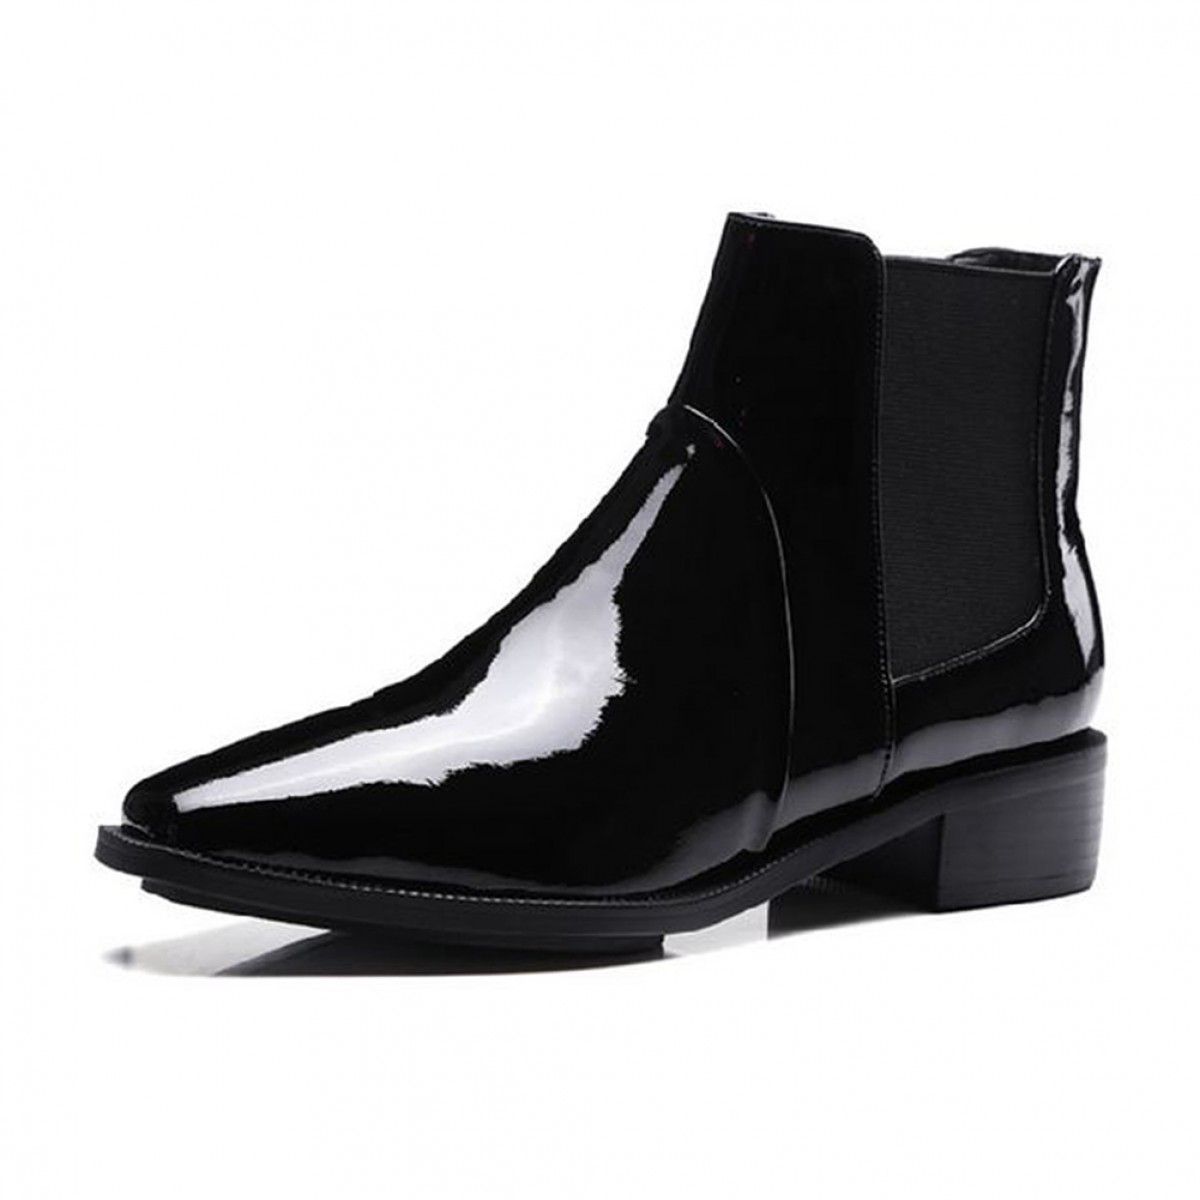 Patent Leather Ankle Boots LATICCI